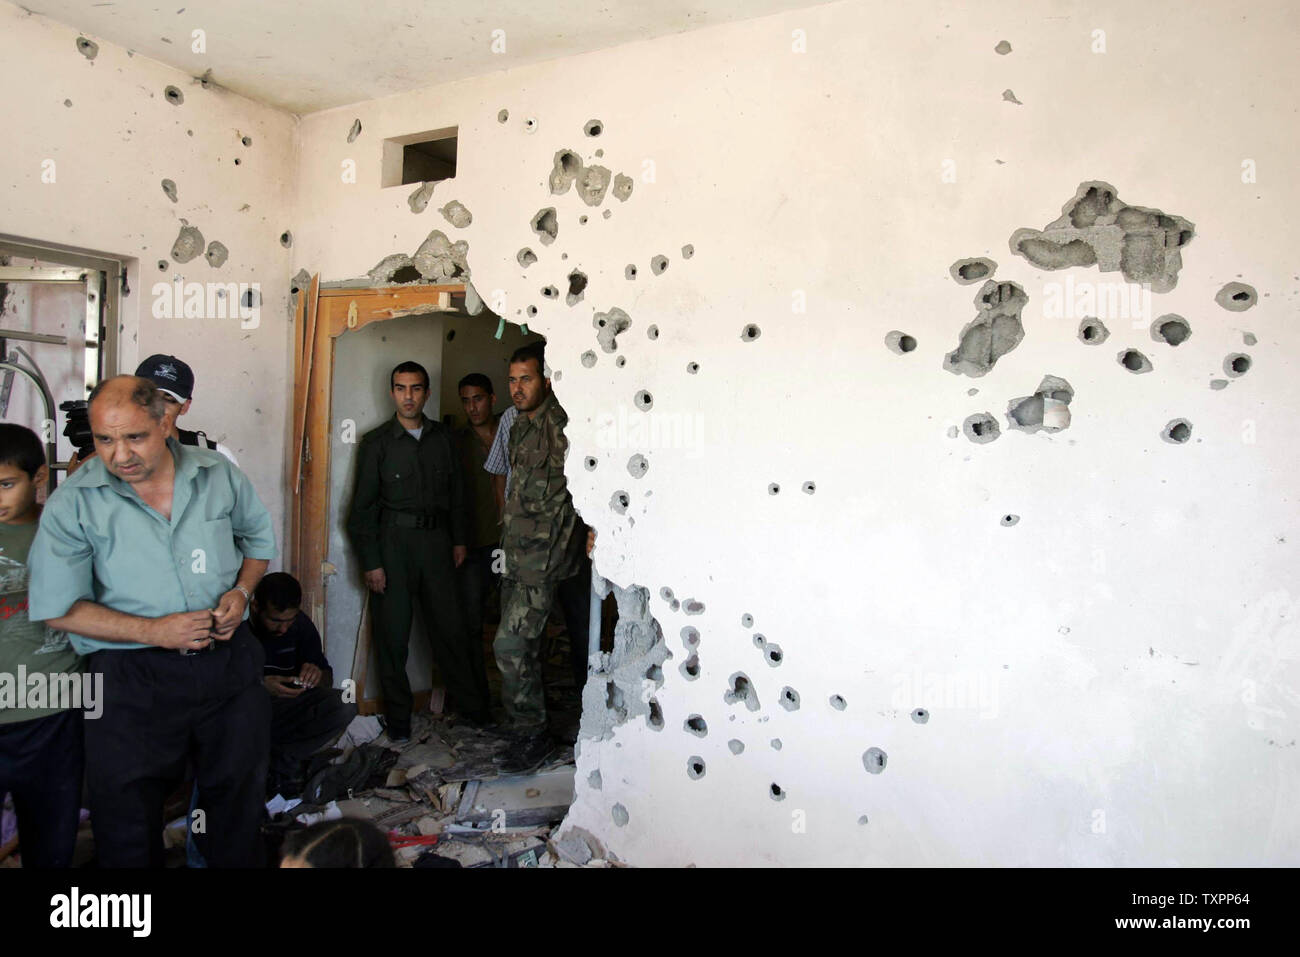 Palestinians survey a house damaged by Israeli tank bullets in Beit Lahia, northern Gaza Strip on July 8, 2006. According to sources Israel has pulled out its forces from the town of Beit Lahia following the death of 35 Palestinians and one Israeli soldier since Israel launched a large scale military operation in Gaza this week aimed at preventing rocket attacks and securing the release of a captured soldier.  (UPI Photo/Ismael Mohamad) - Stock Image